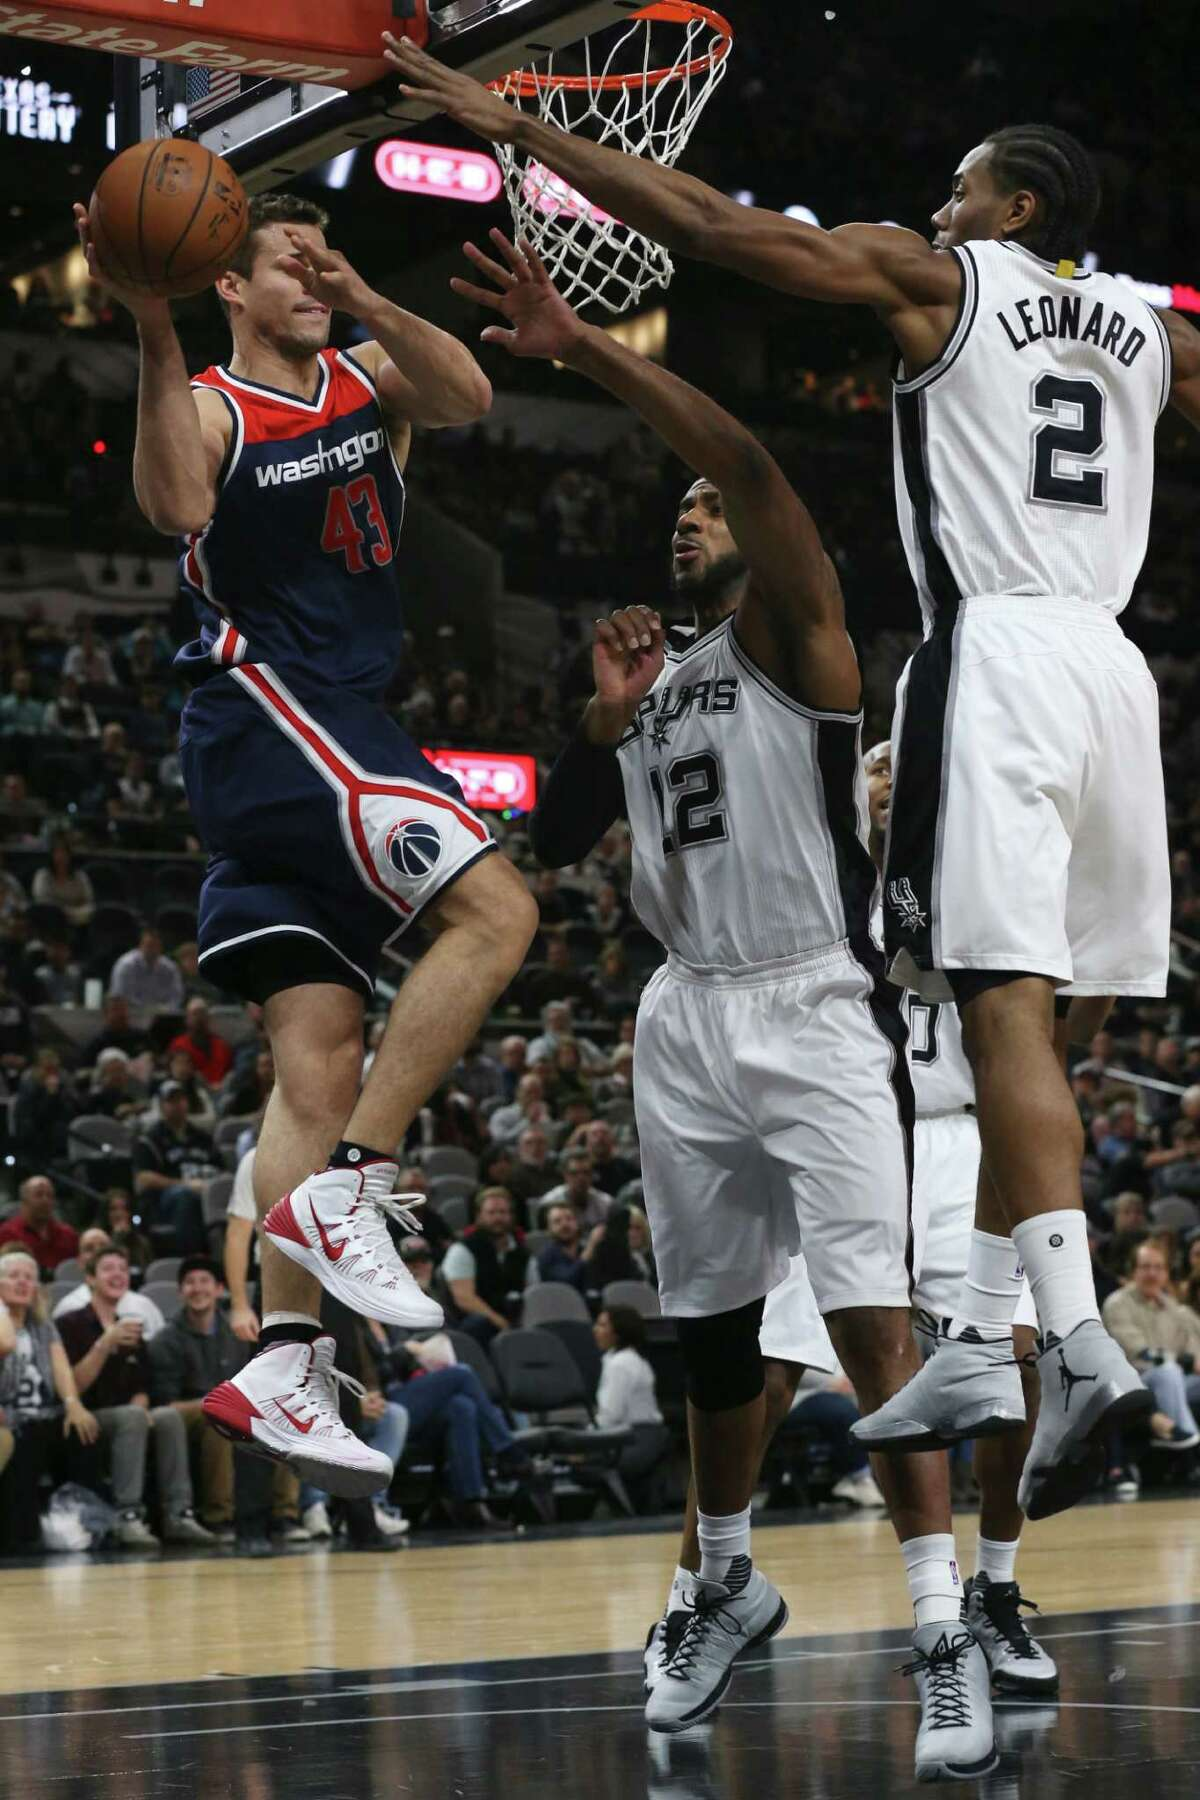 San Antonio Spurs' LaMarcus Aldridge and Kawhi Leonard defend against Washington Wizards' Kris Humphries during the first half at the AT&T Center, Wednesday, Dec. 16, 2015.